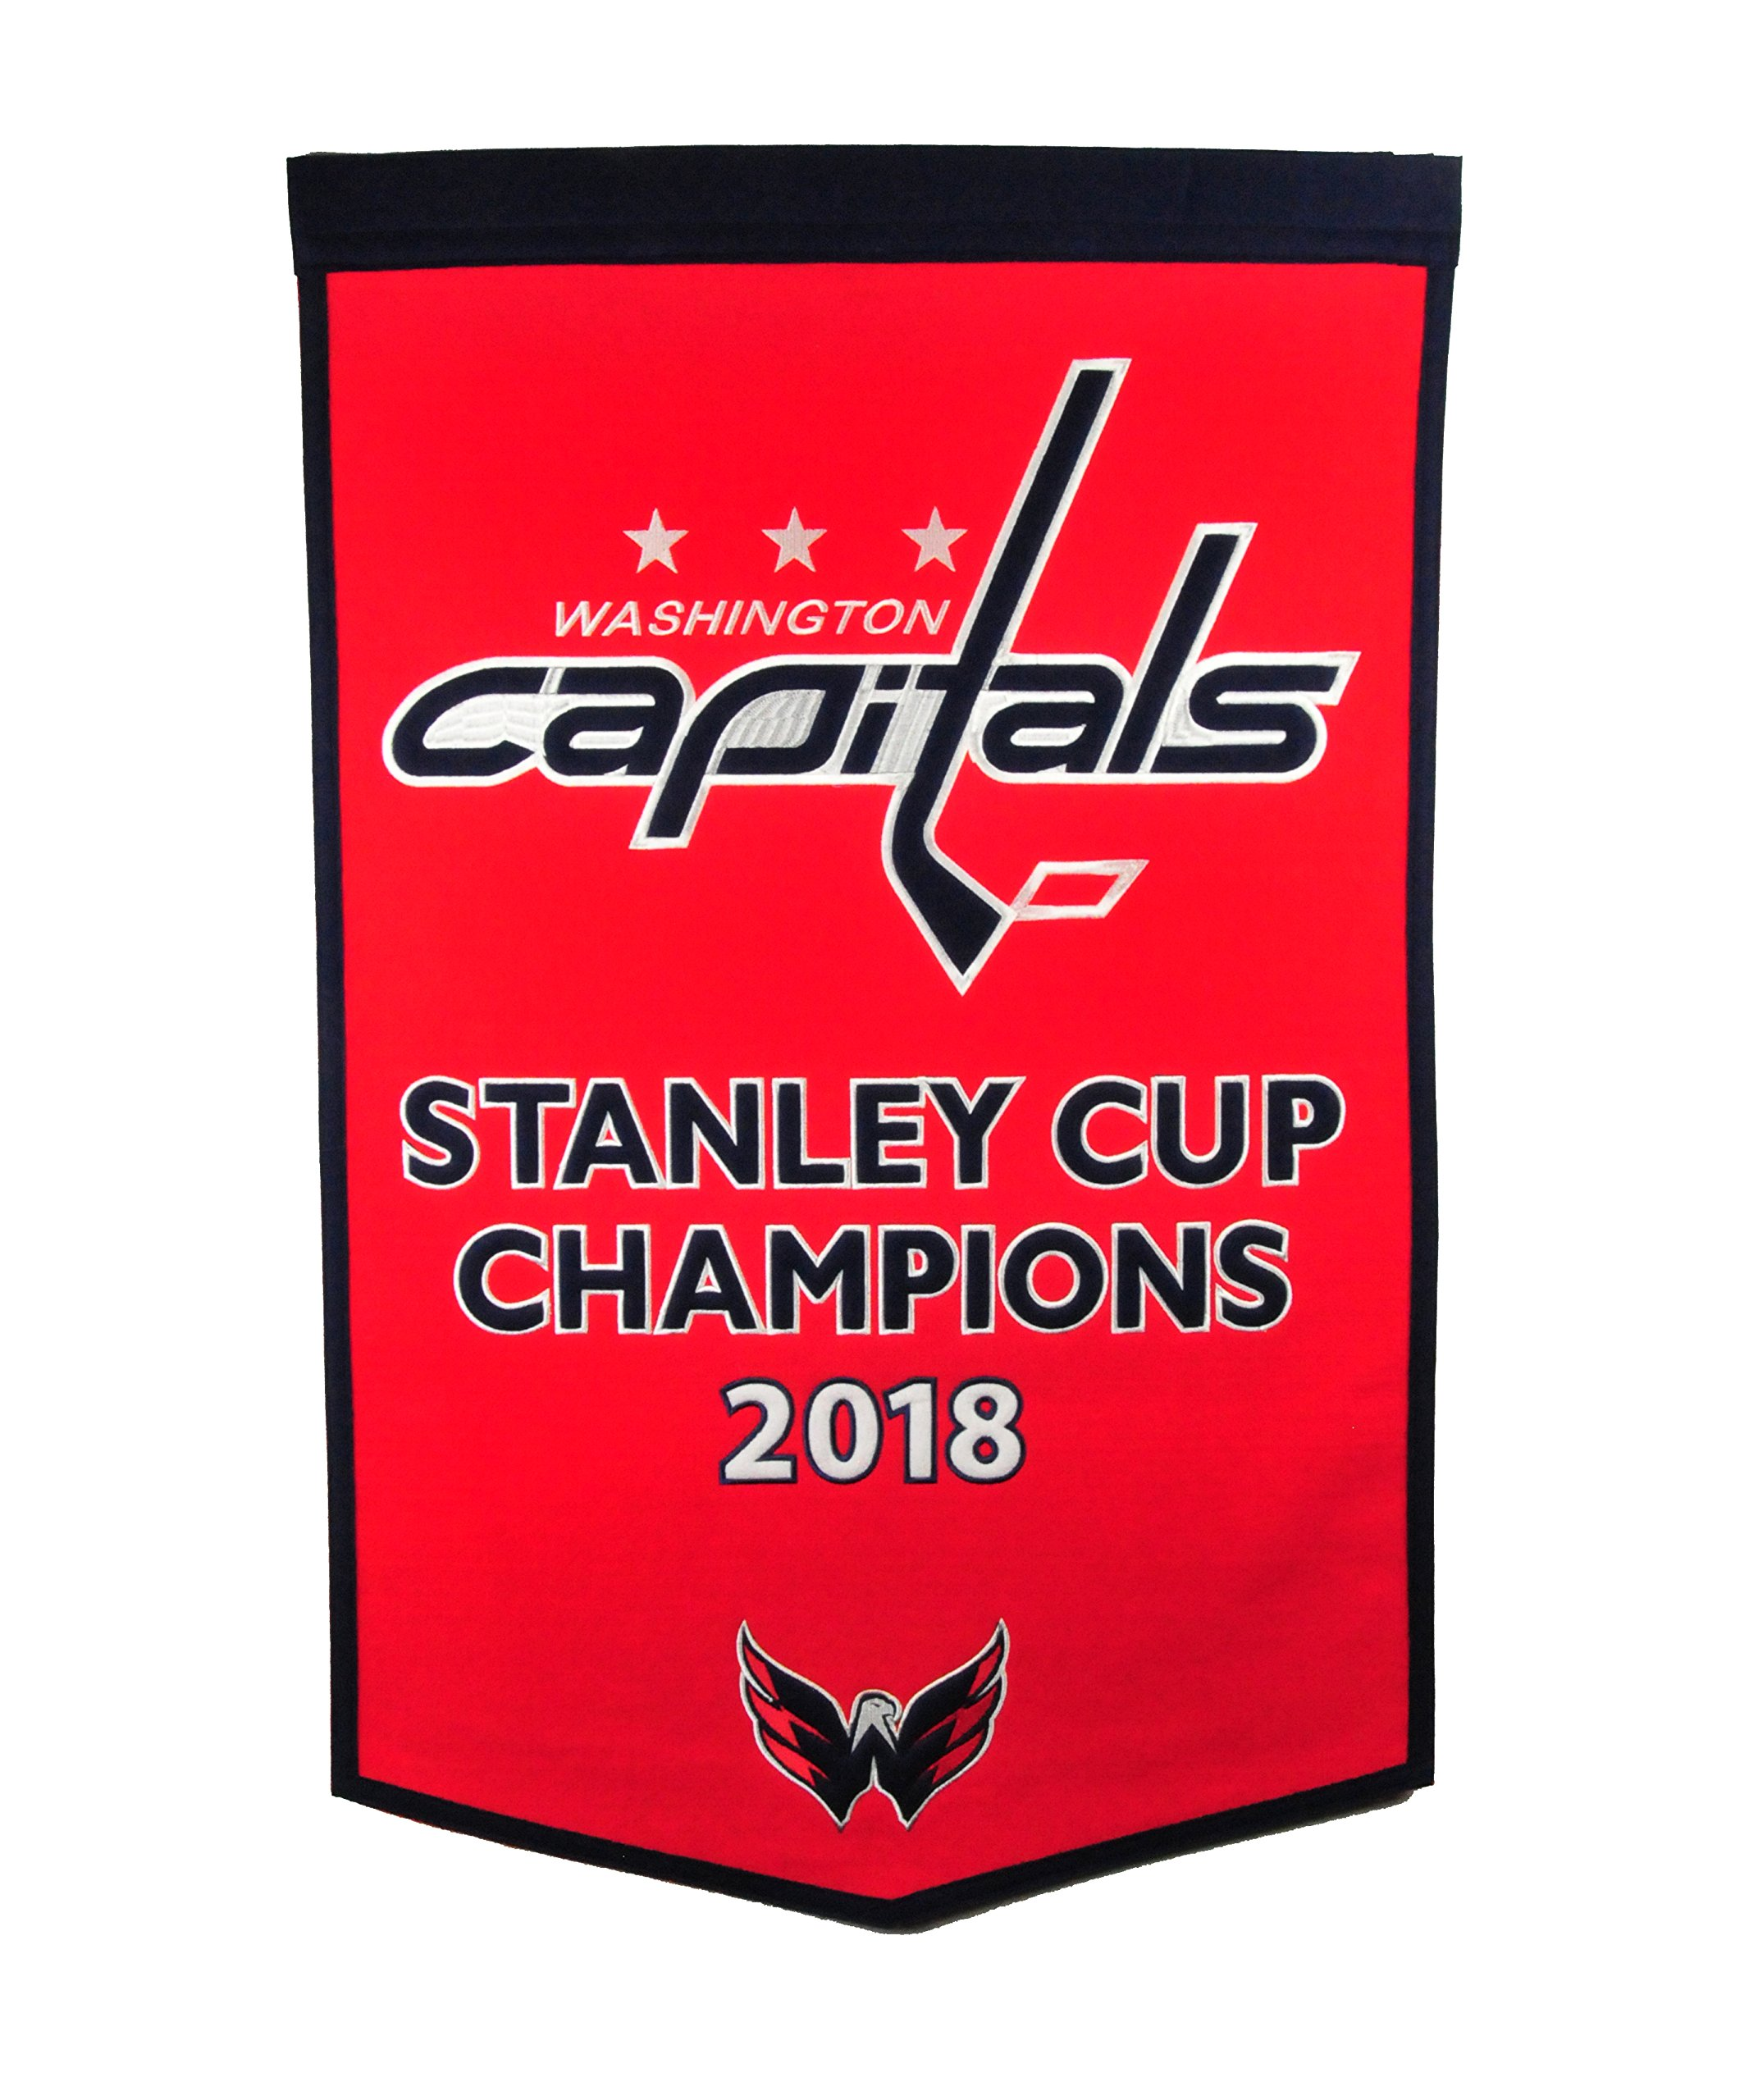 Washington Capitals 2018 NHL Stanley Cup Champions Dynasty Banner by Winning Streak